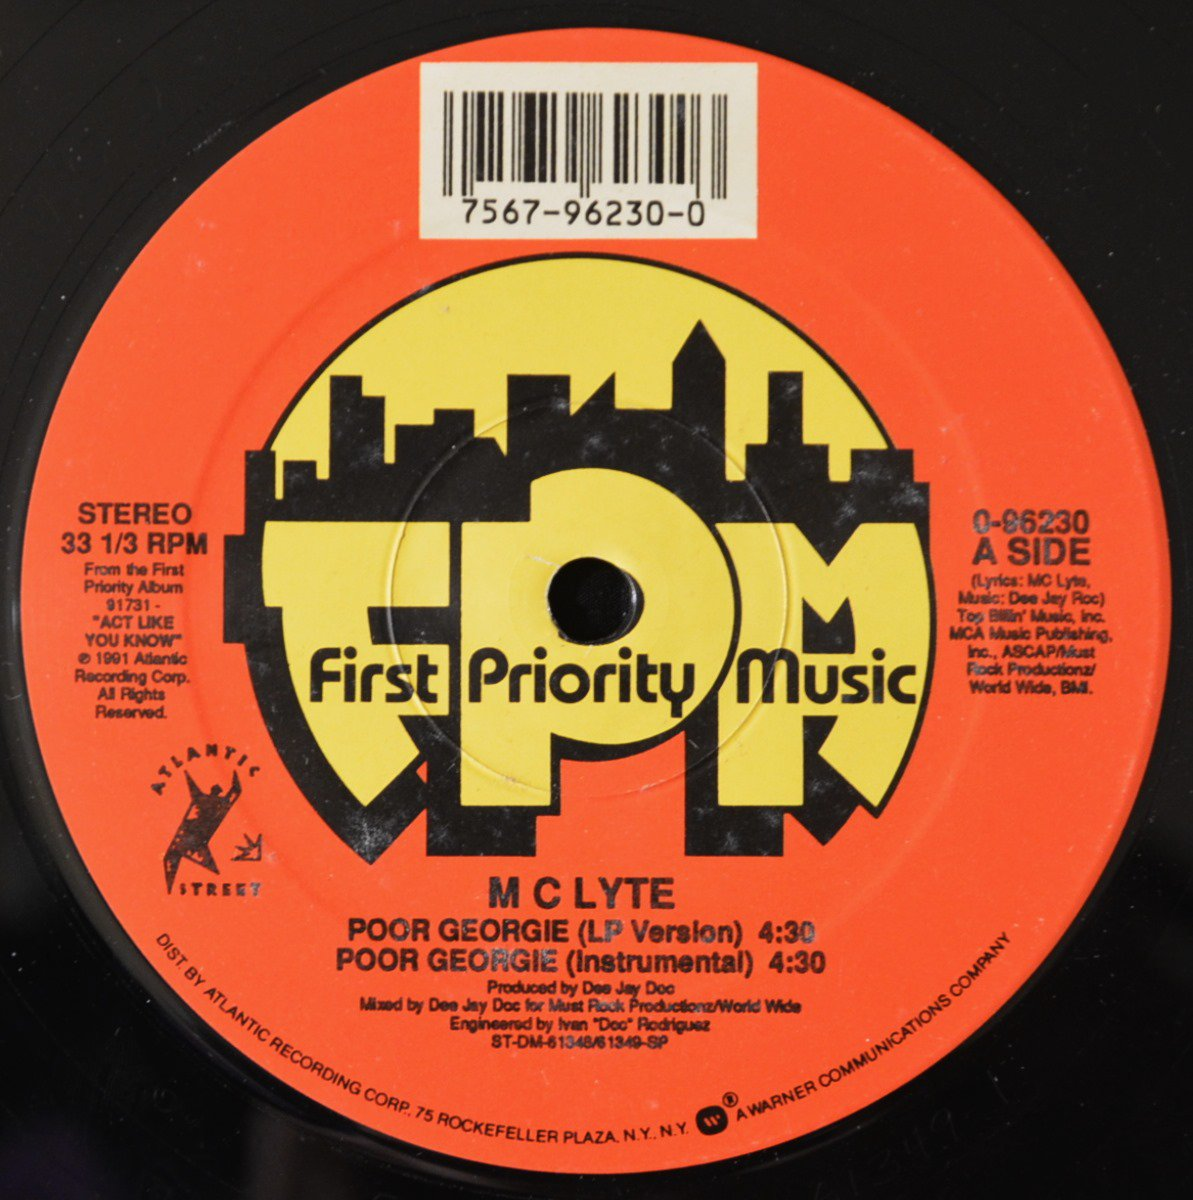 MC LYTE / POOR GEORGIE / SEARCH 4 THE LYTE (12